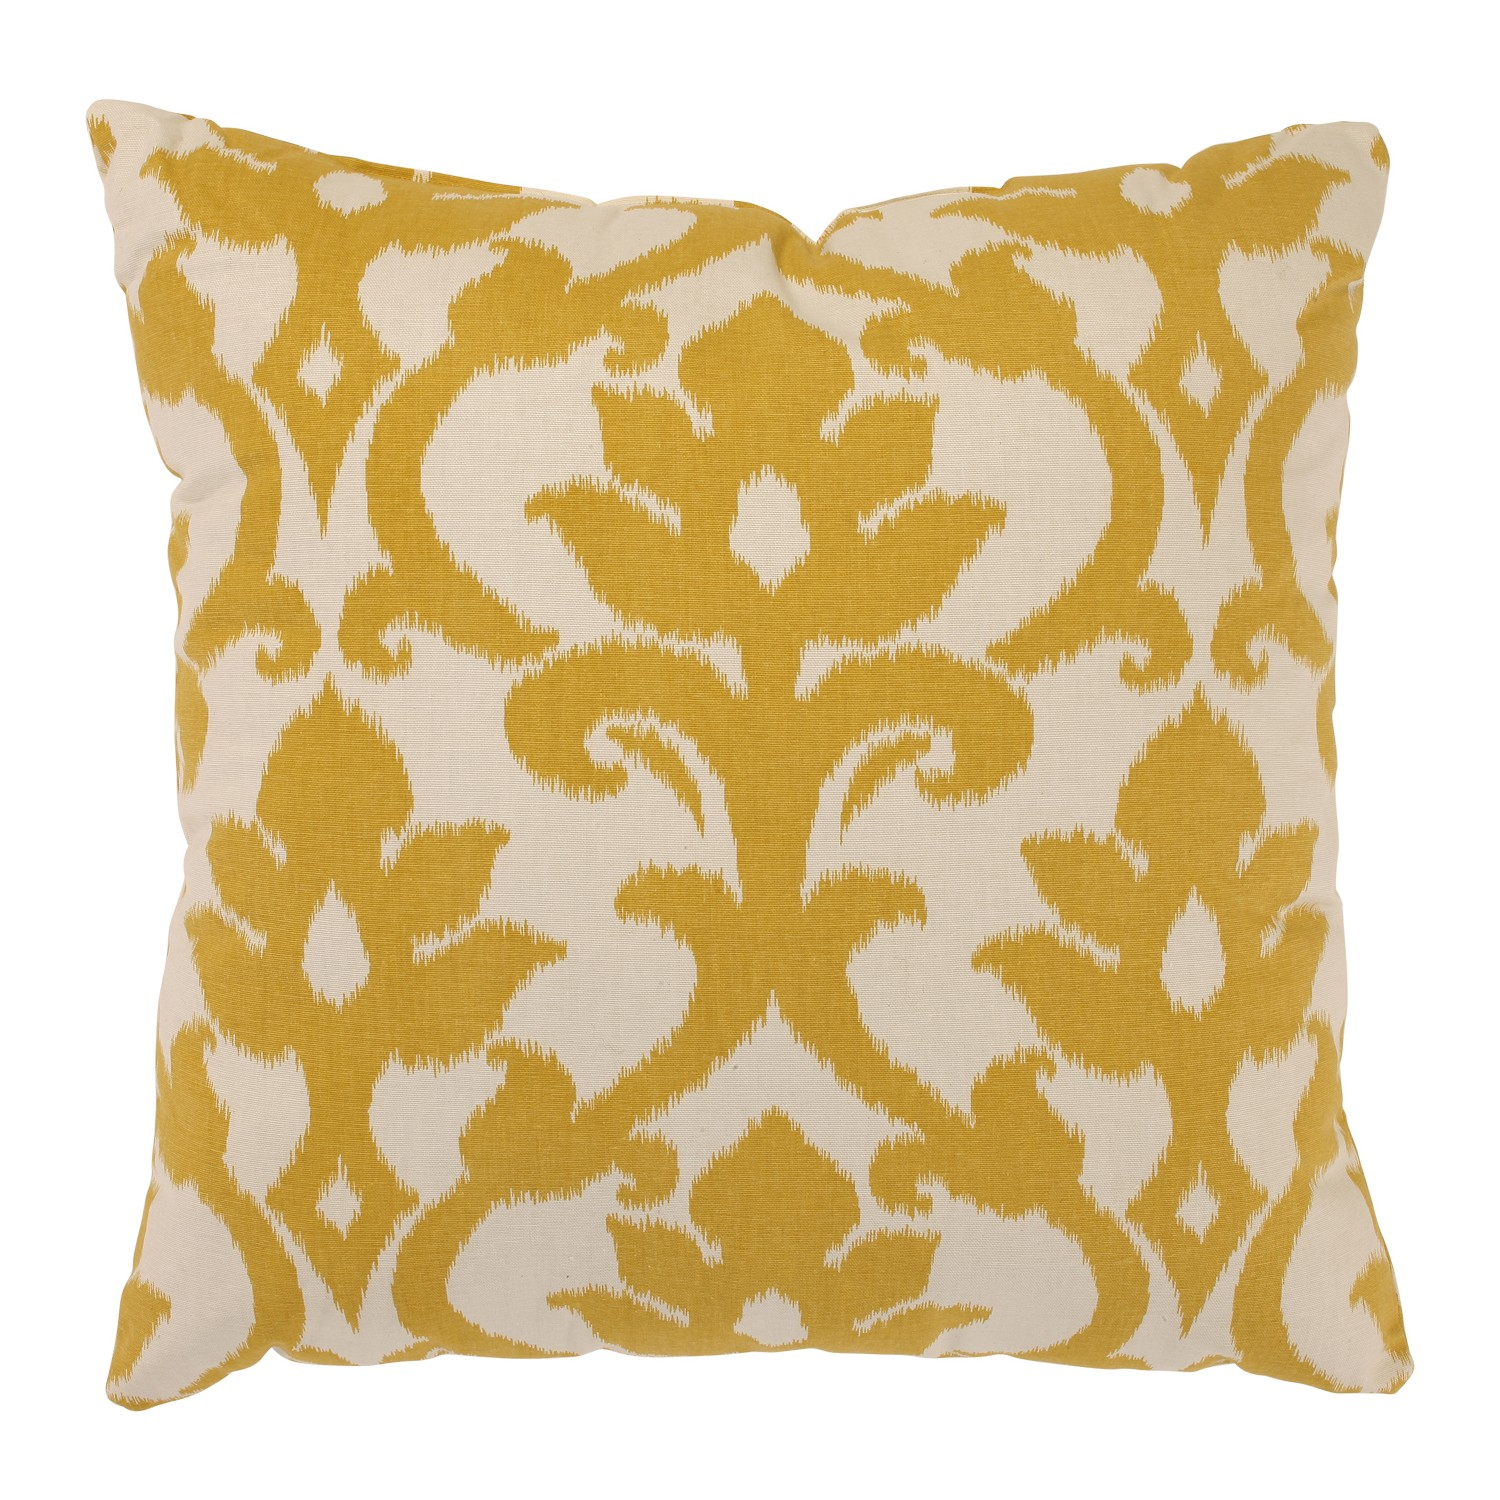 Azzure 24.5-inch Floor Pillow in Marigold